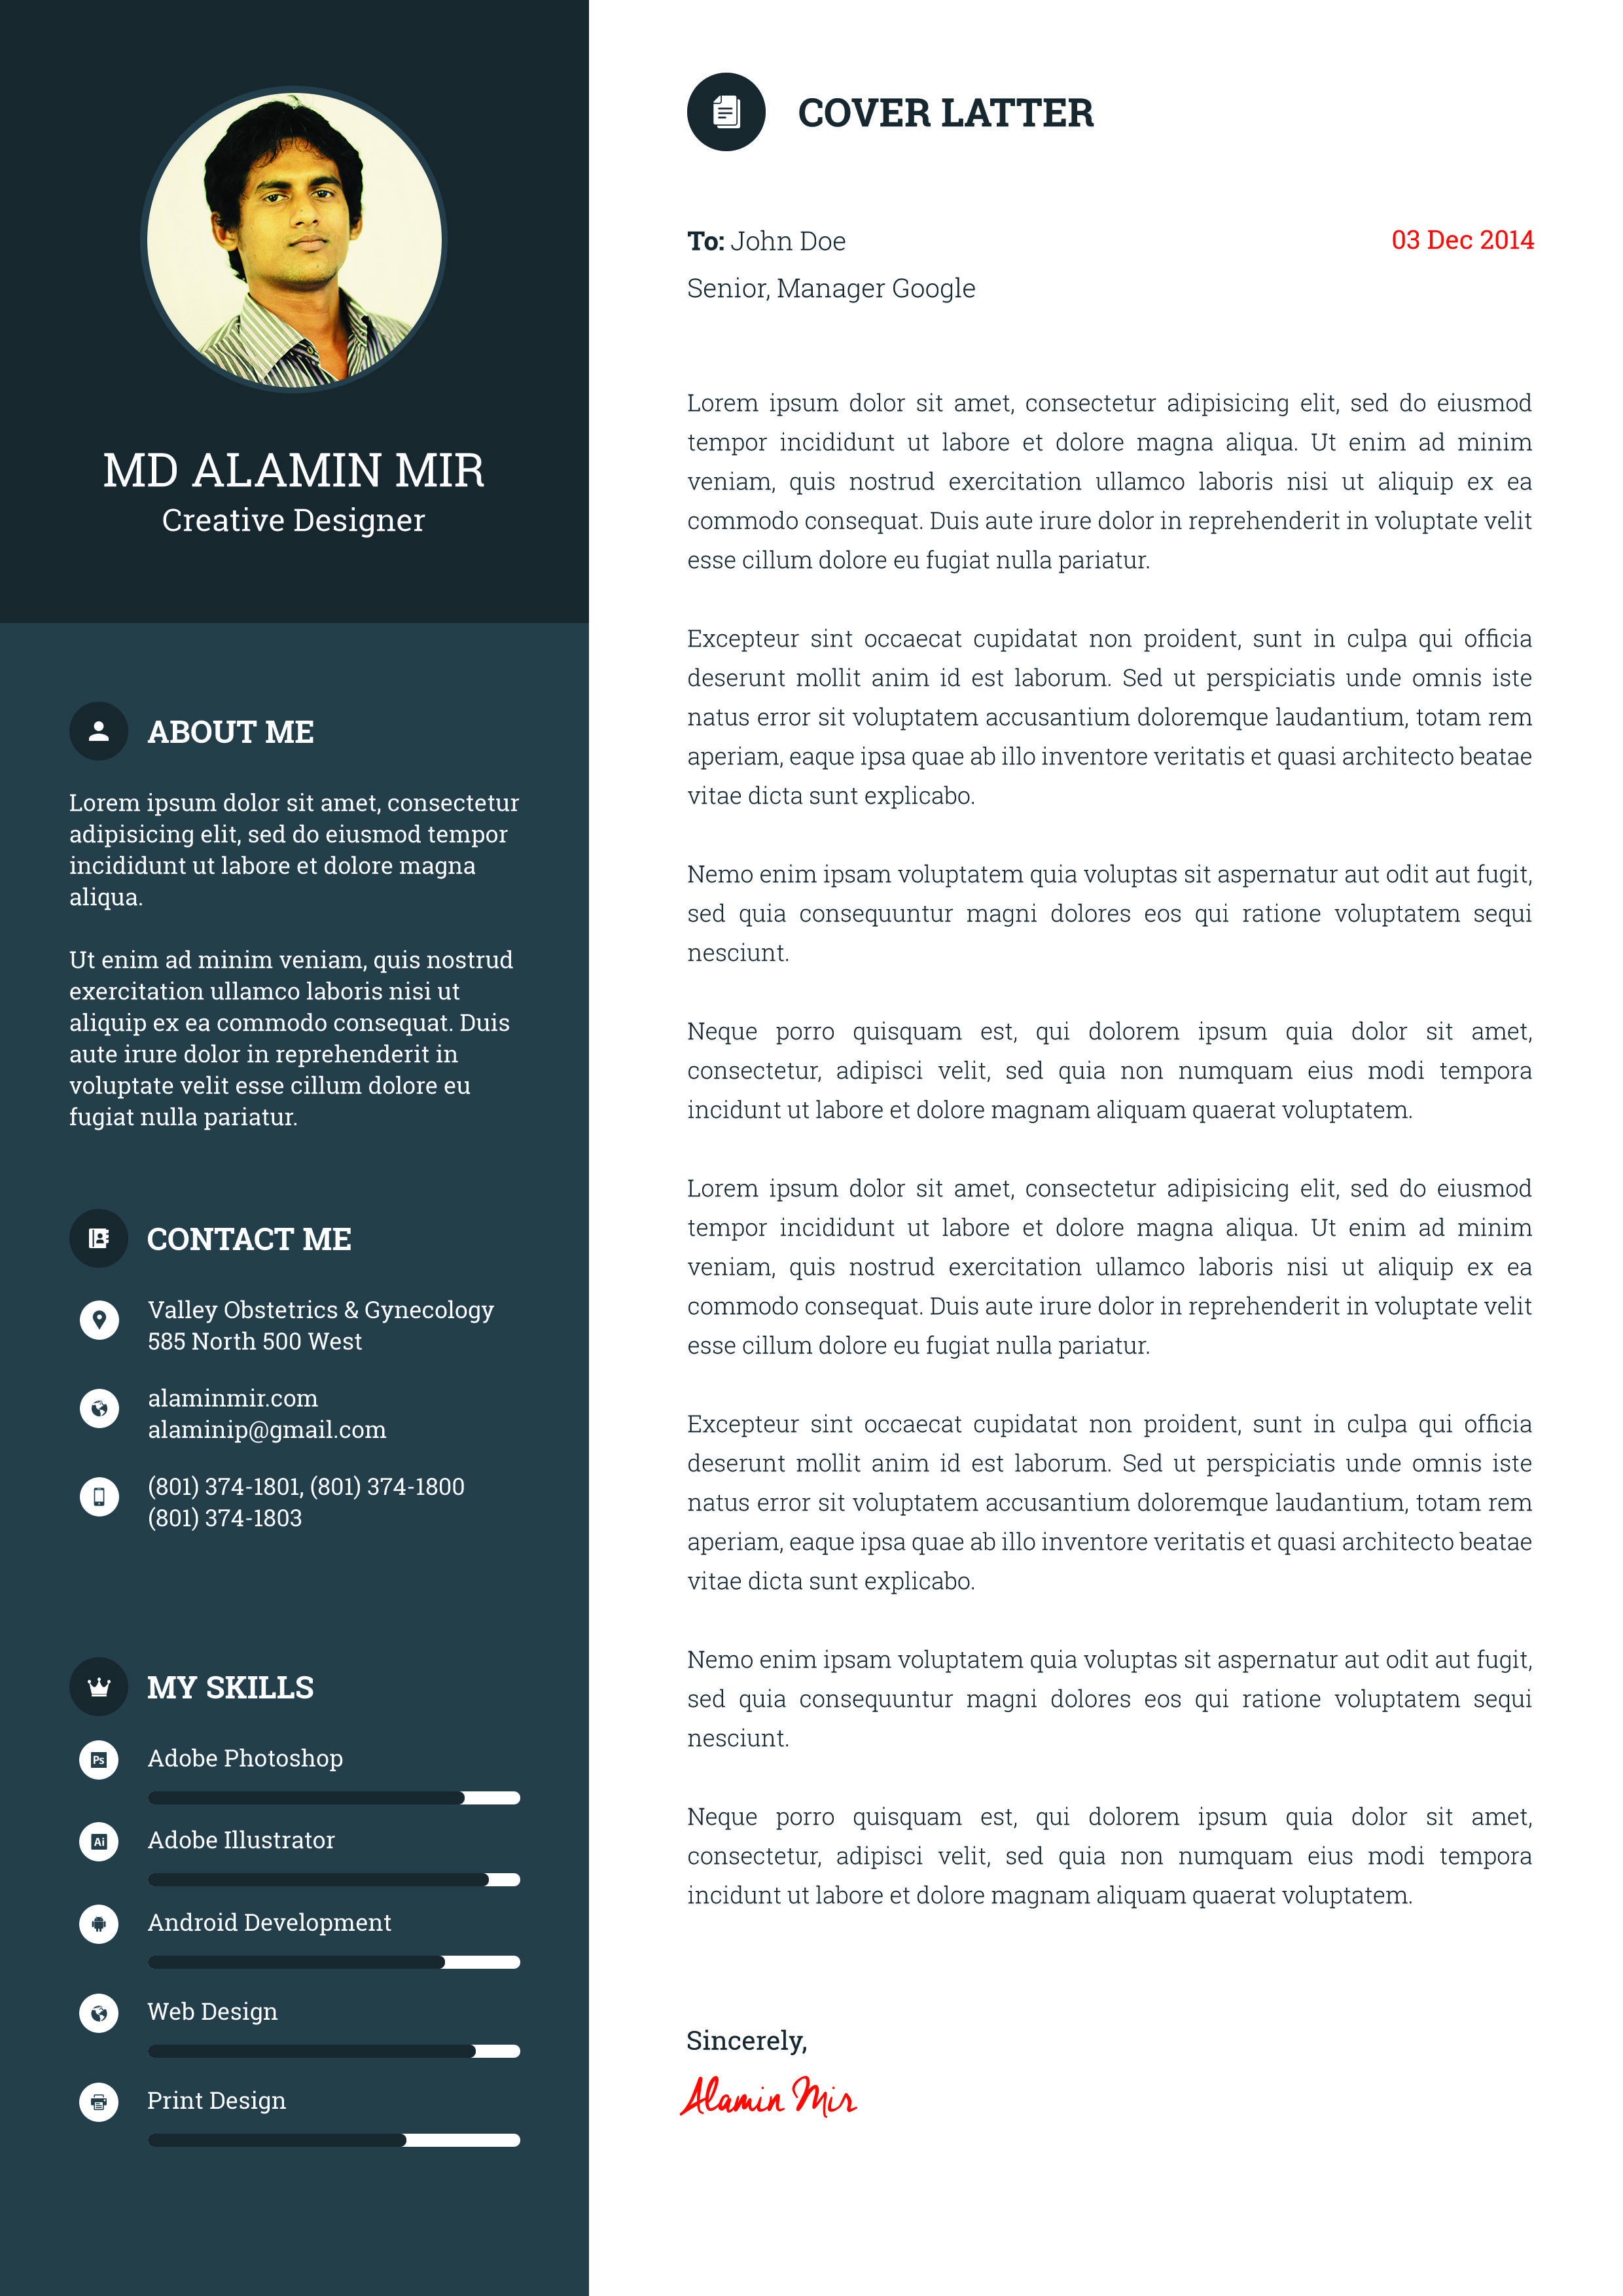 Example 7 I Will Design Resume Awesome Cv For You For 5 Www Fiverr Com Jobe Cv For Jobe Great Cv Design Resume Awesome Cv